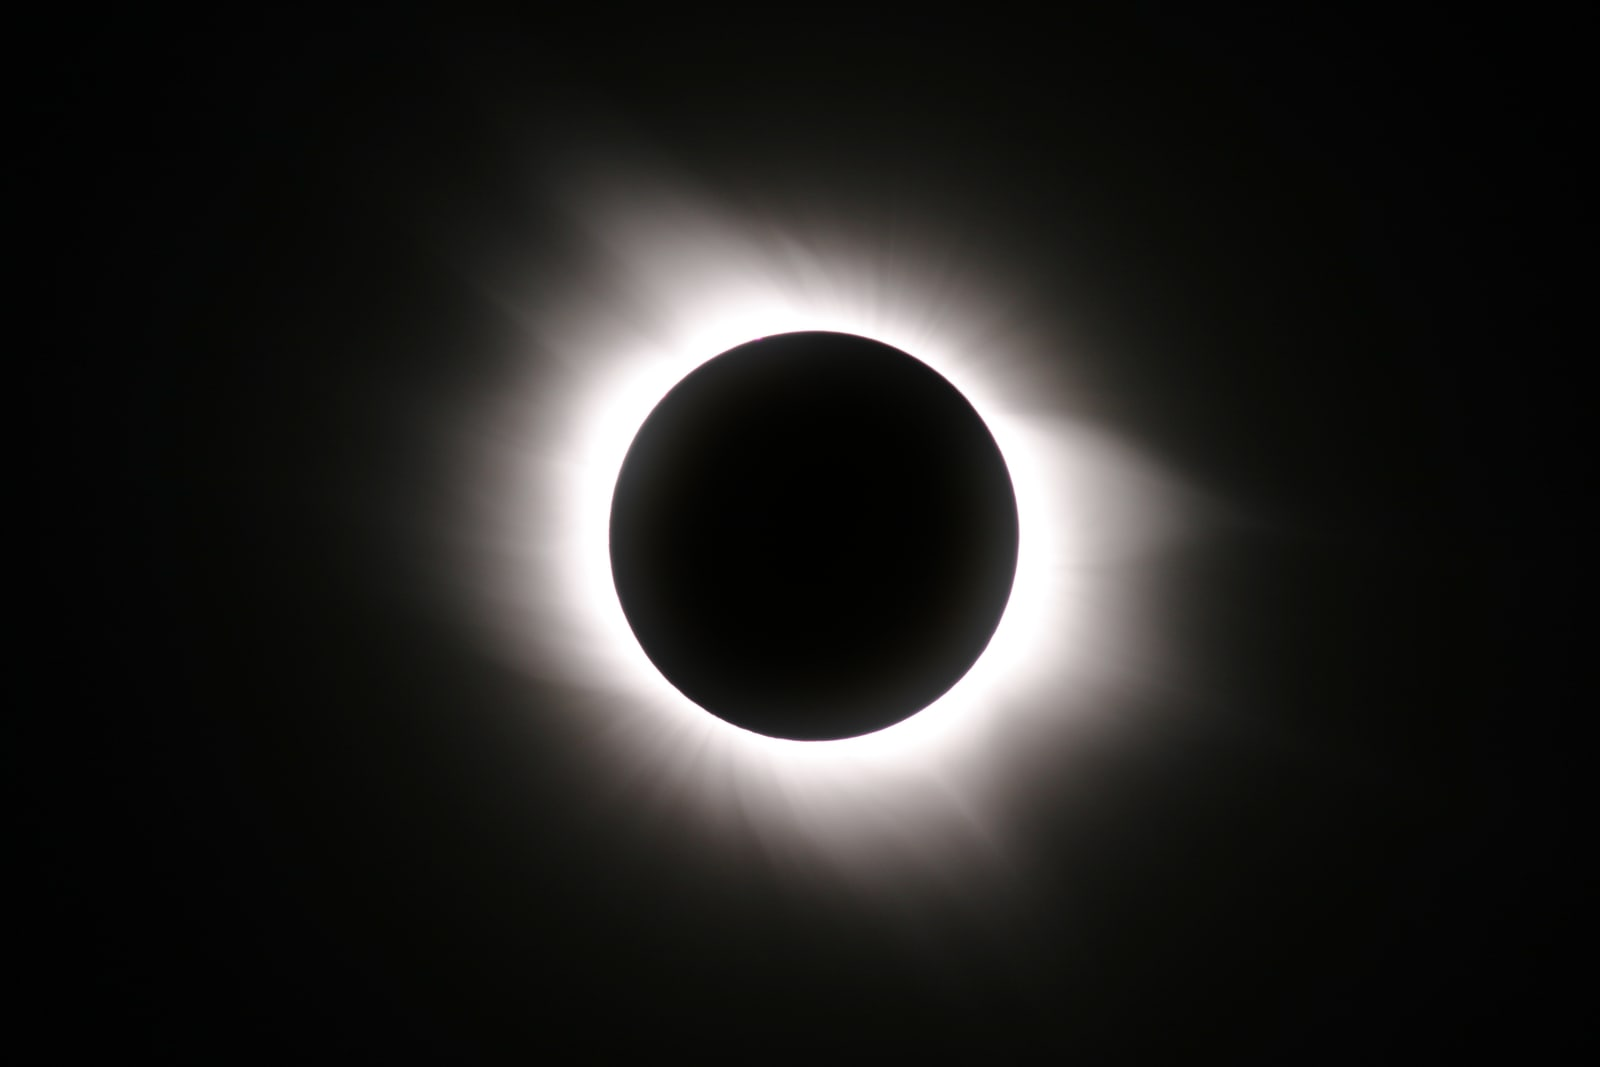 'Total Solar Eclipse of 2006 March 29, Southern Turkey, Side'